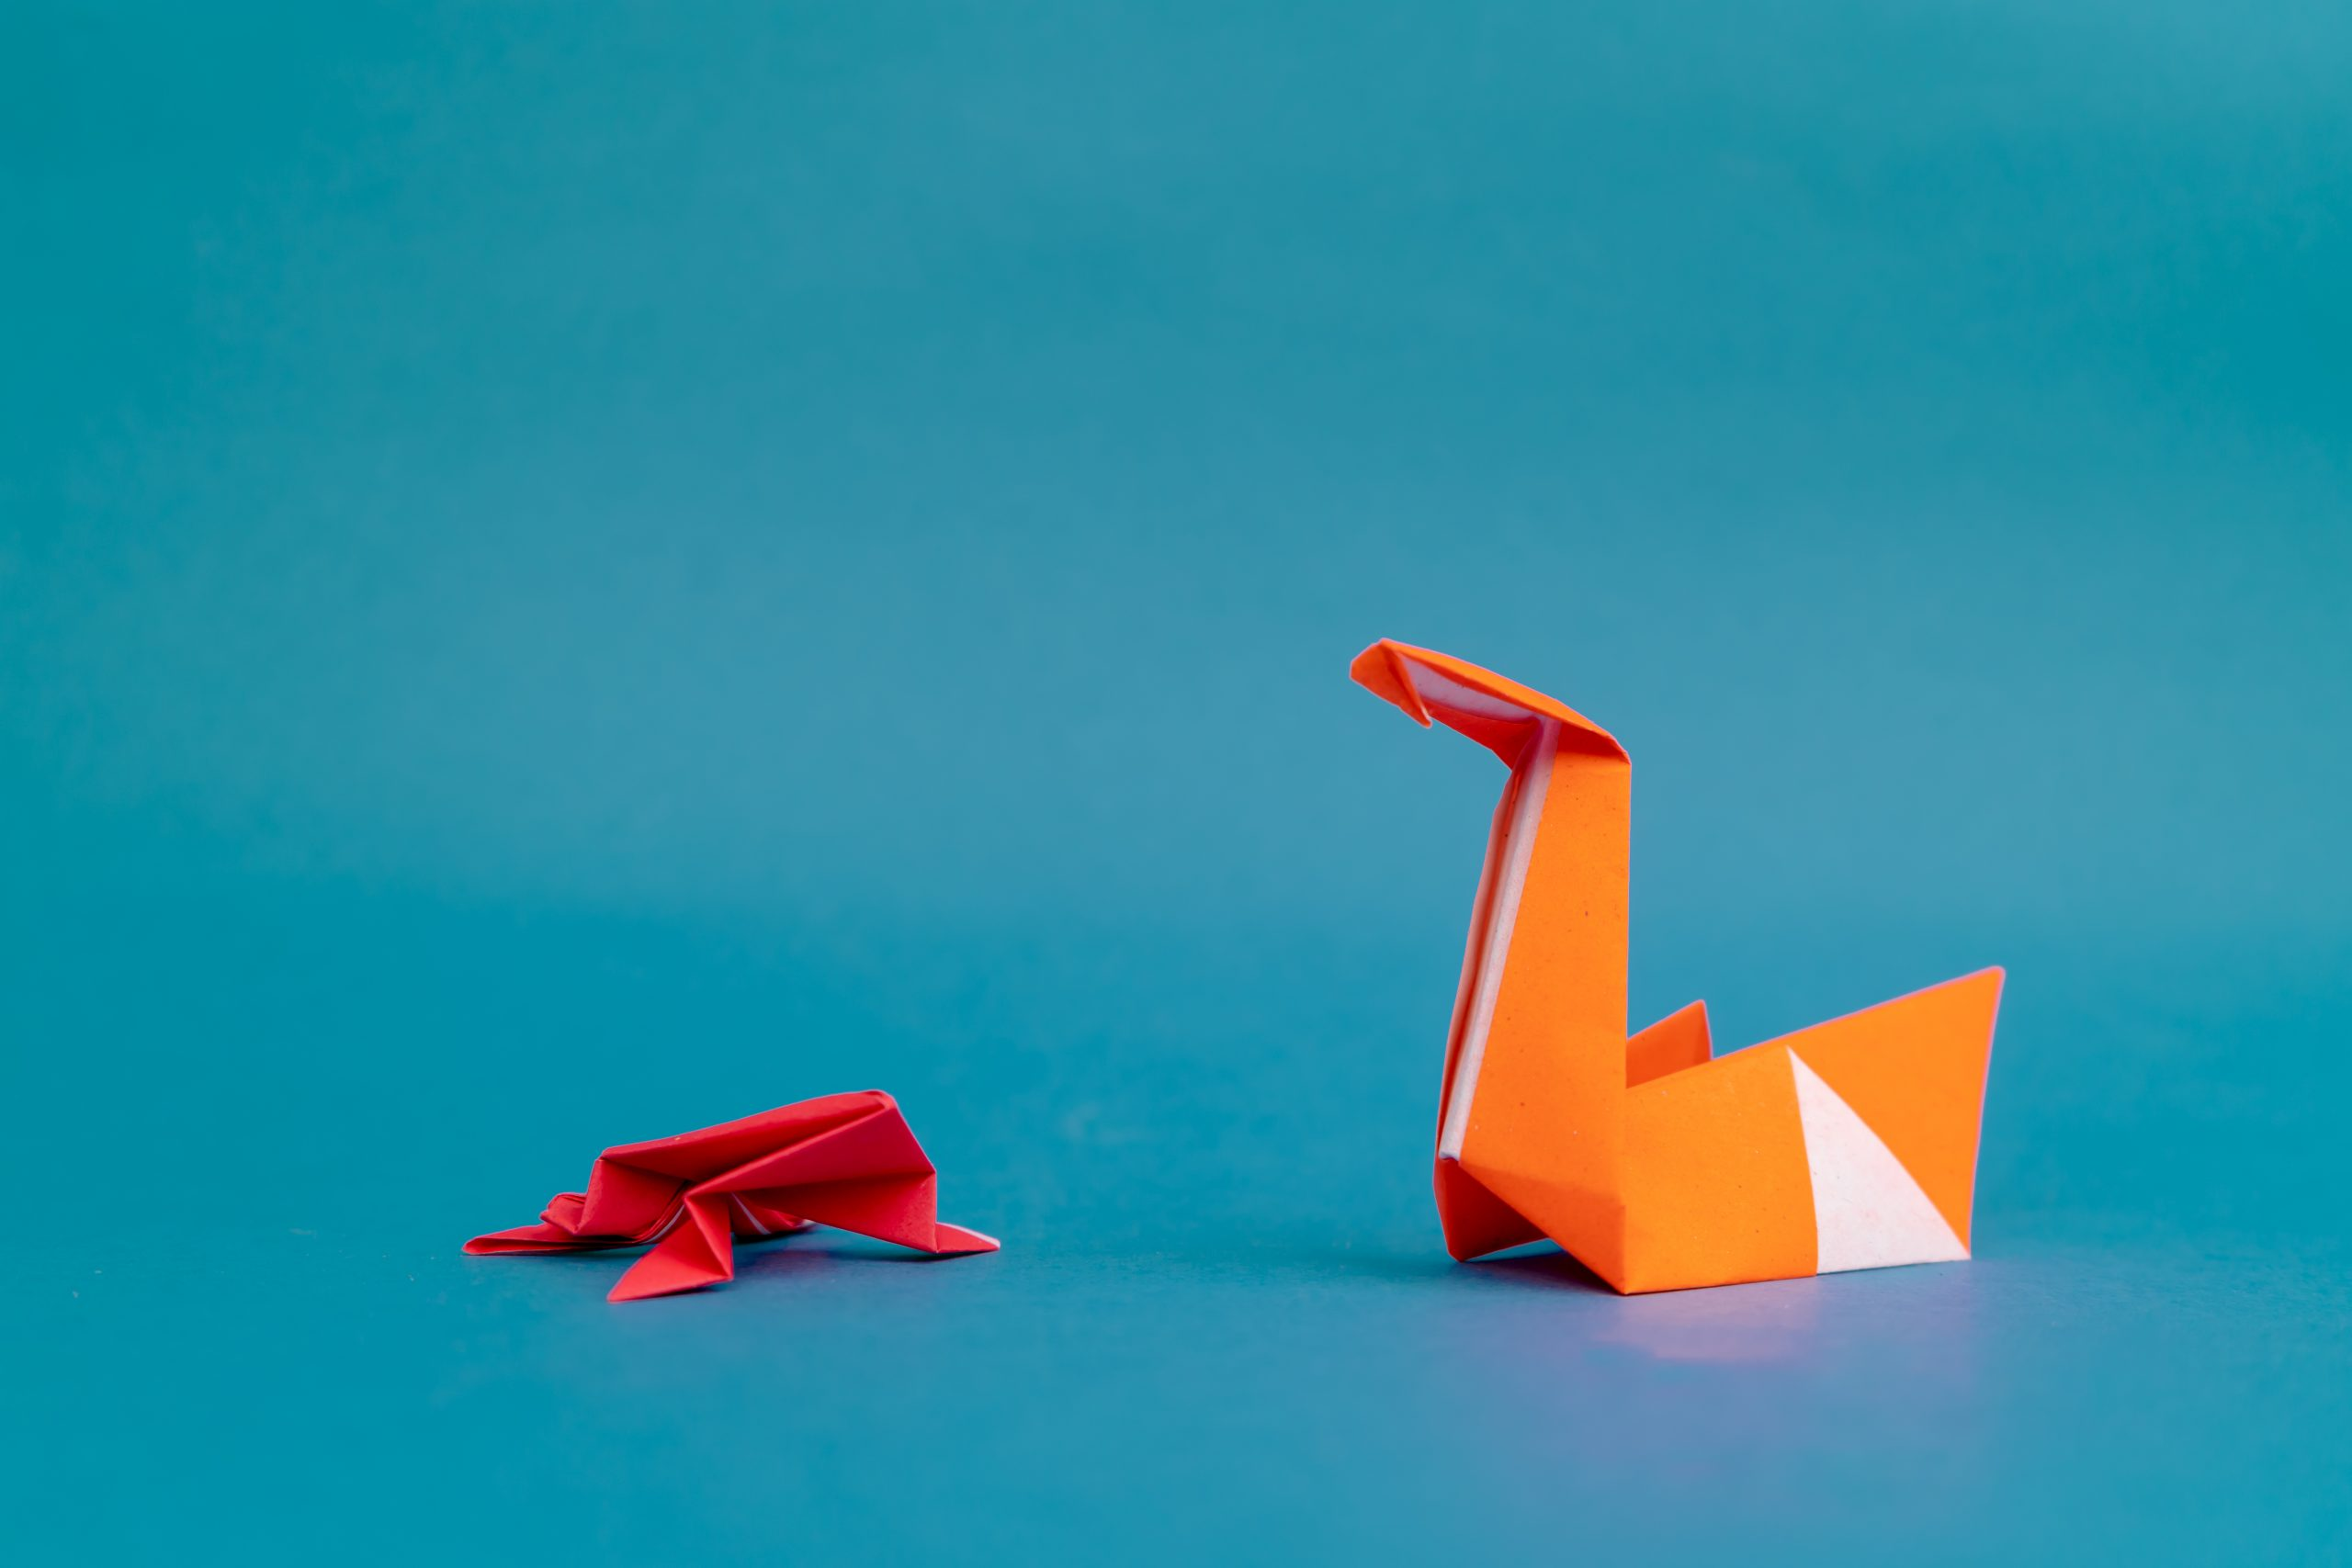 Origami Frog and Swan